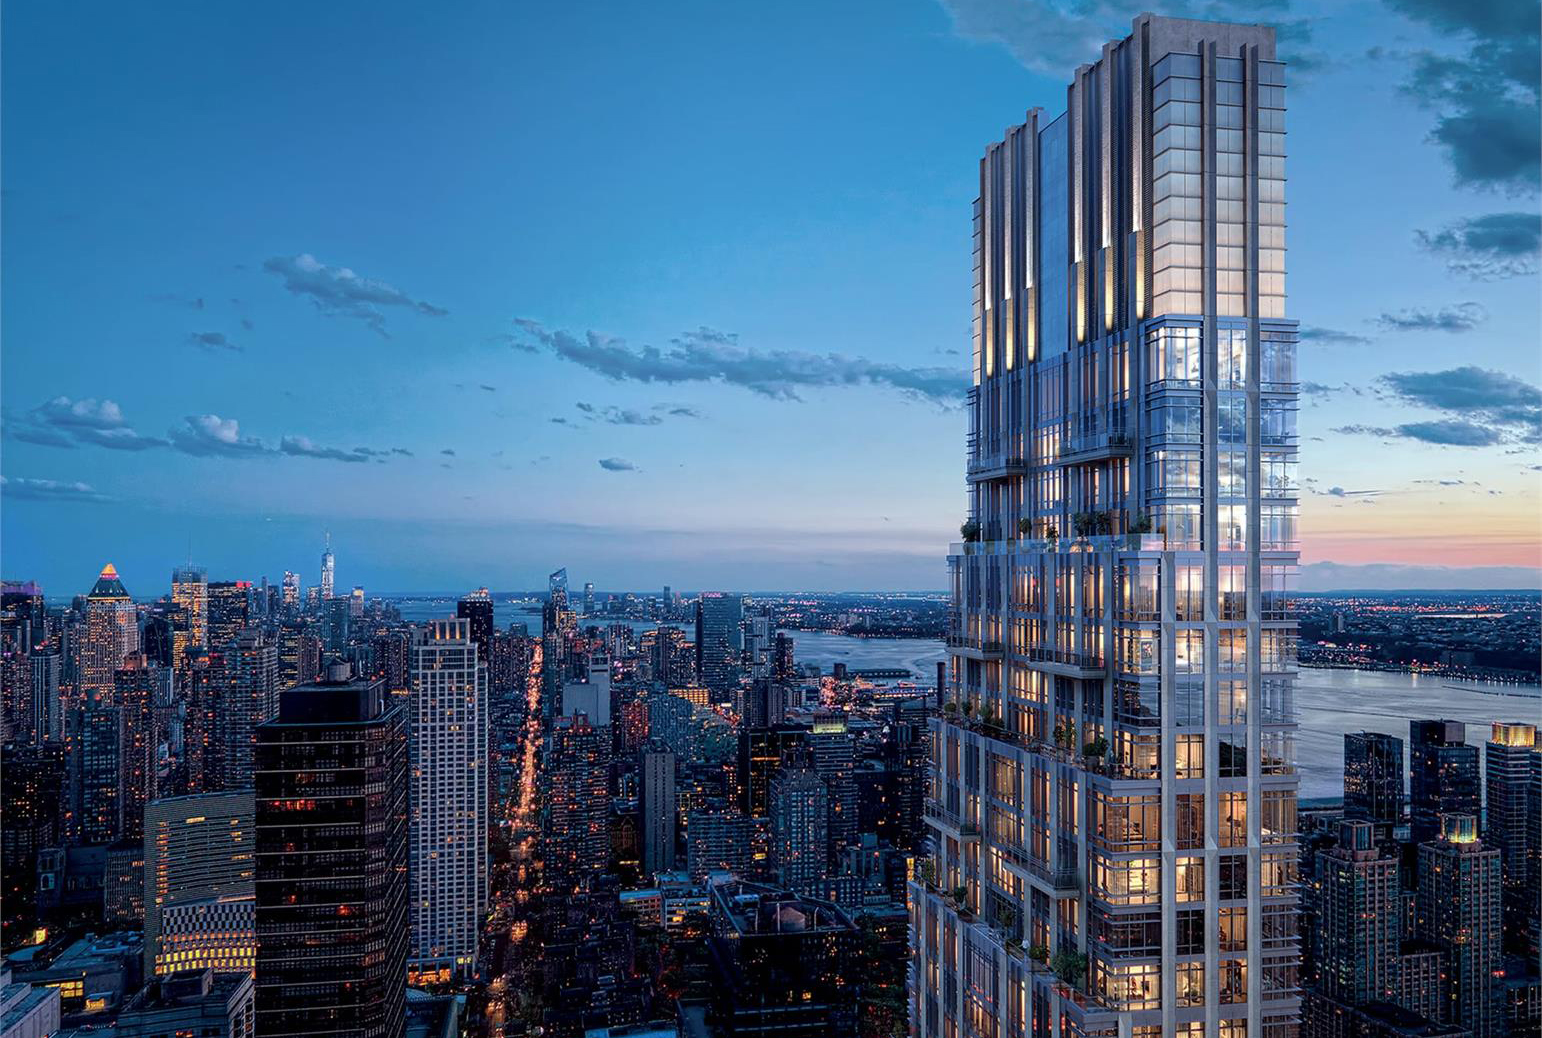 Exterior aerial view of 200 Amsterdam condominiums located in New York City. Includes detailed architecture of building.